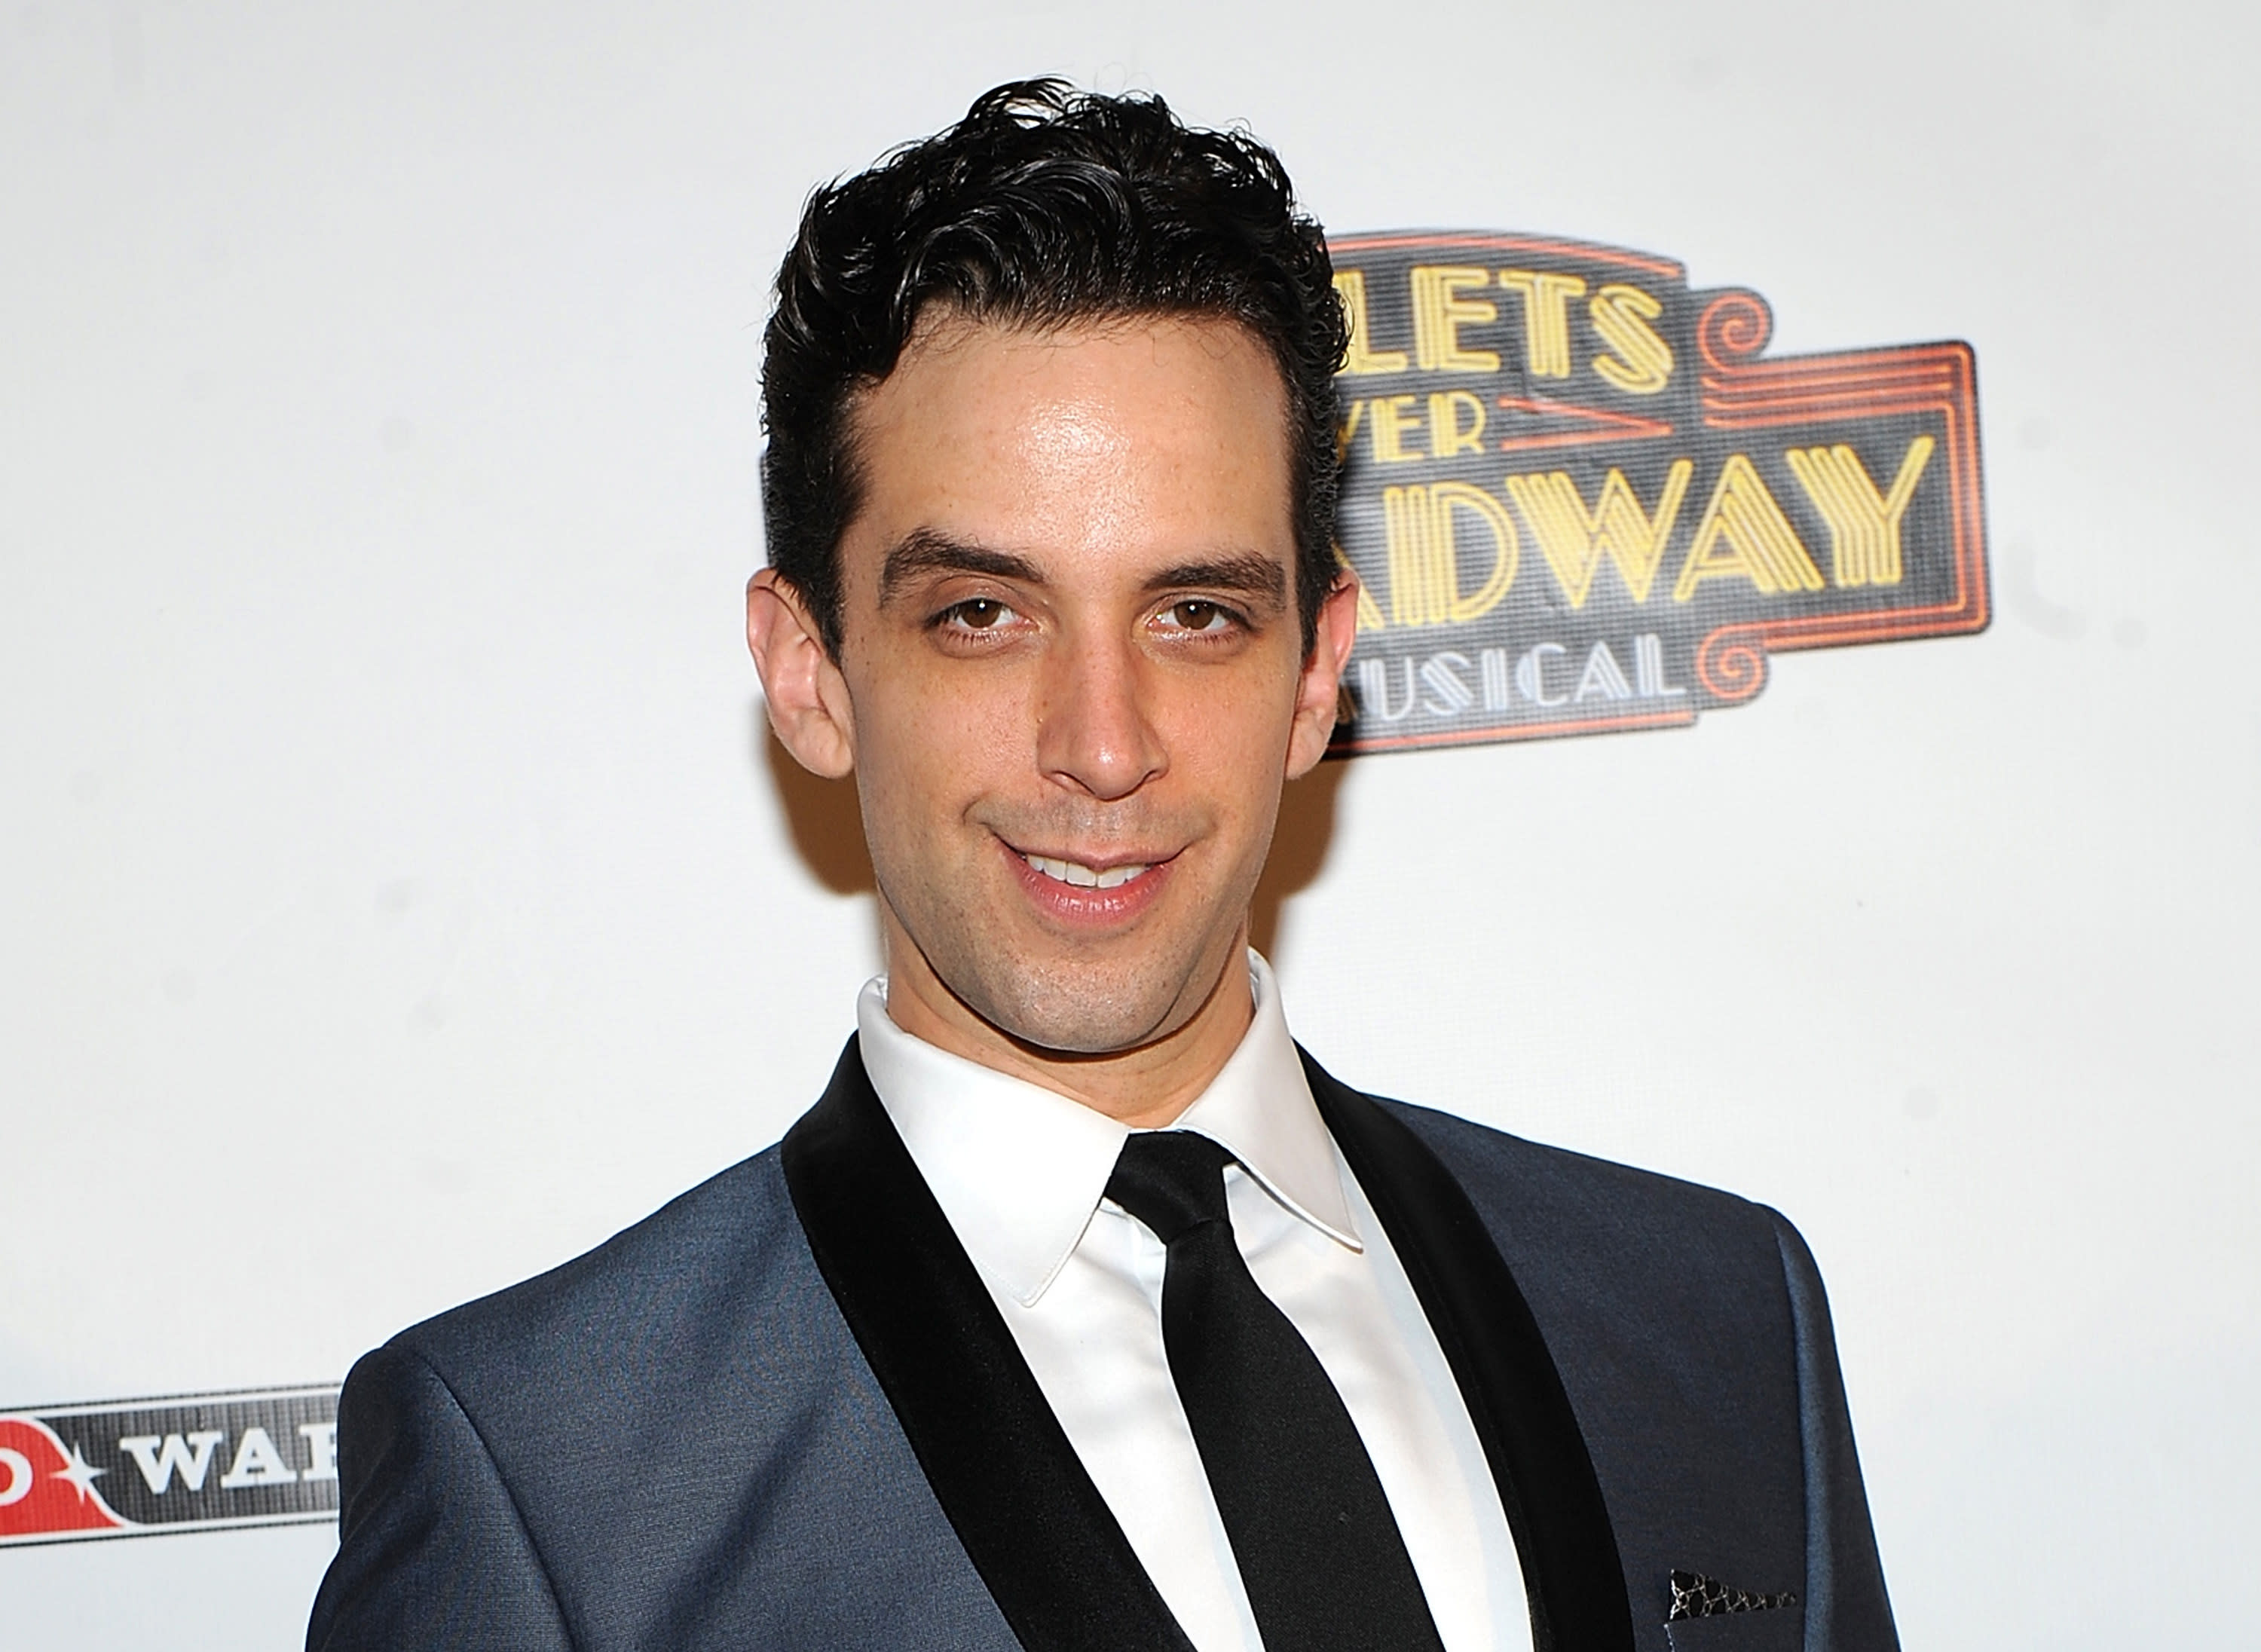 "FILE - In this April 10, 2014, file photo, actor Nick Cordero attends the after-party for the opening night of ""Bullets Over Broadway"" in New York. Tony Award-nominated actor Cordero, who specialized in playing tough guys on Broadway in such shows as ""Waitress,"" ""A Bronx Tale"" and ""Bullets Over Broadway,"" has died in Los Angeles after suffering severe medical complications after contracting the coronavirus. He was 41. Cordero died Sunday, July 5, 2020, at Cedars-Sinai hospital after more than 90 days in the hospital, according to his wife, Amanda Kloots. (Photo by Brad Barket/Invision/AP, File)"